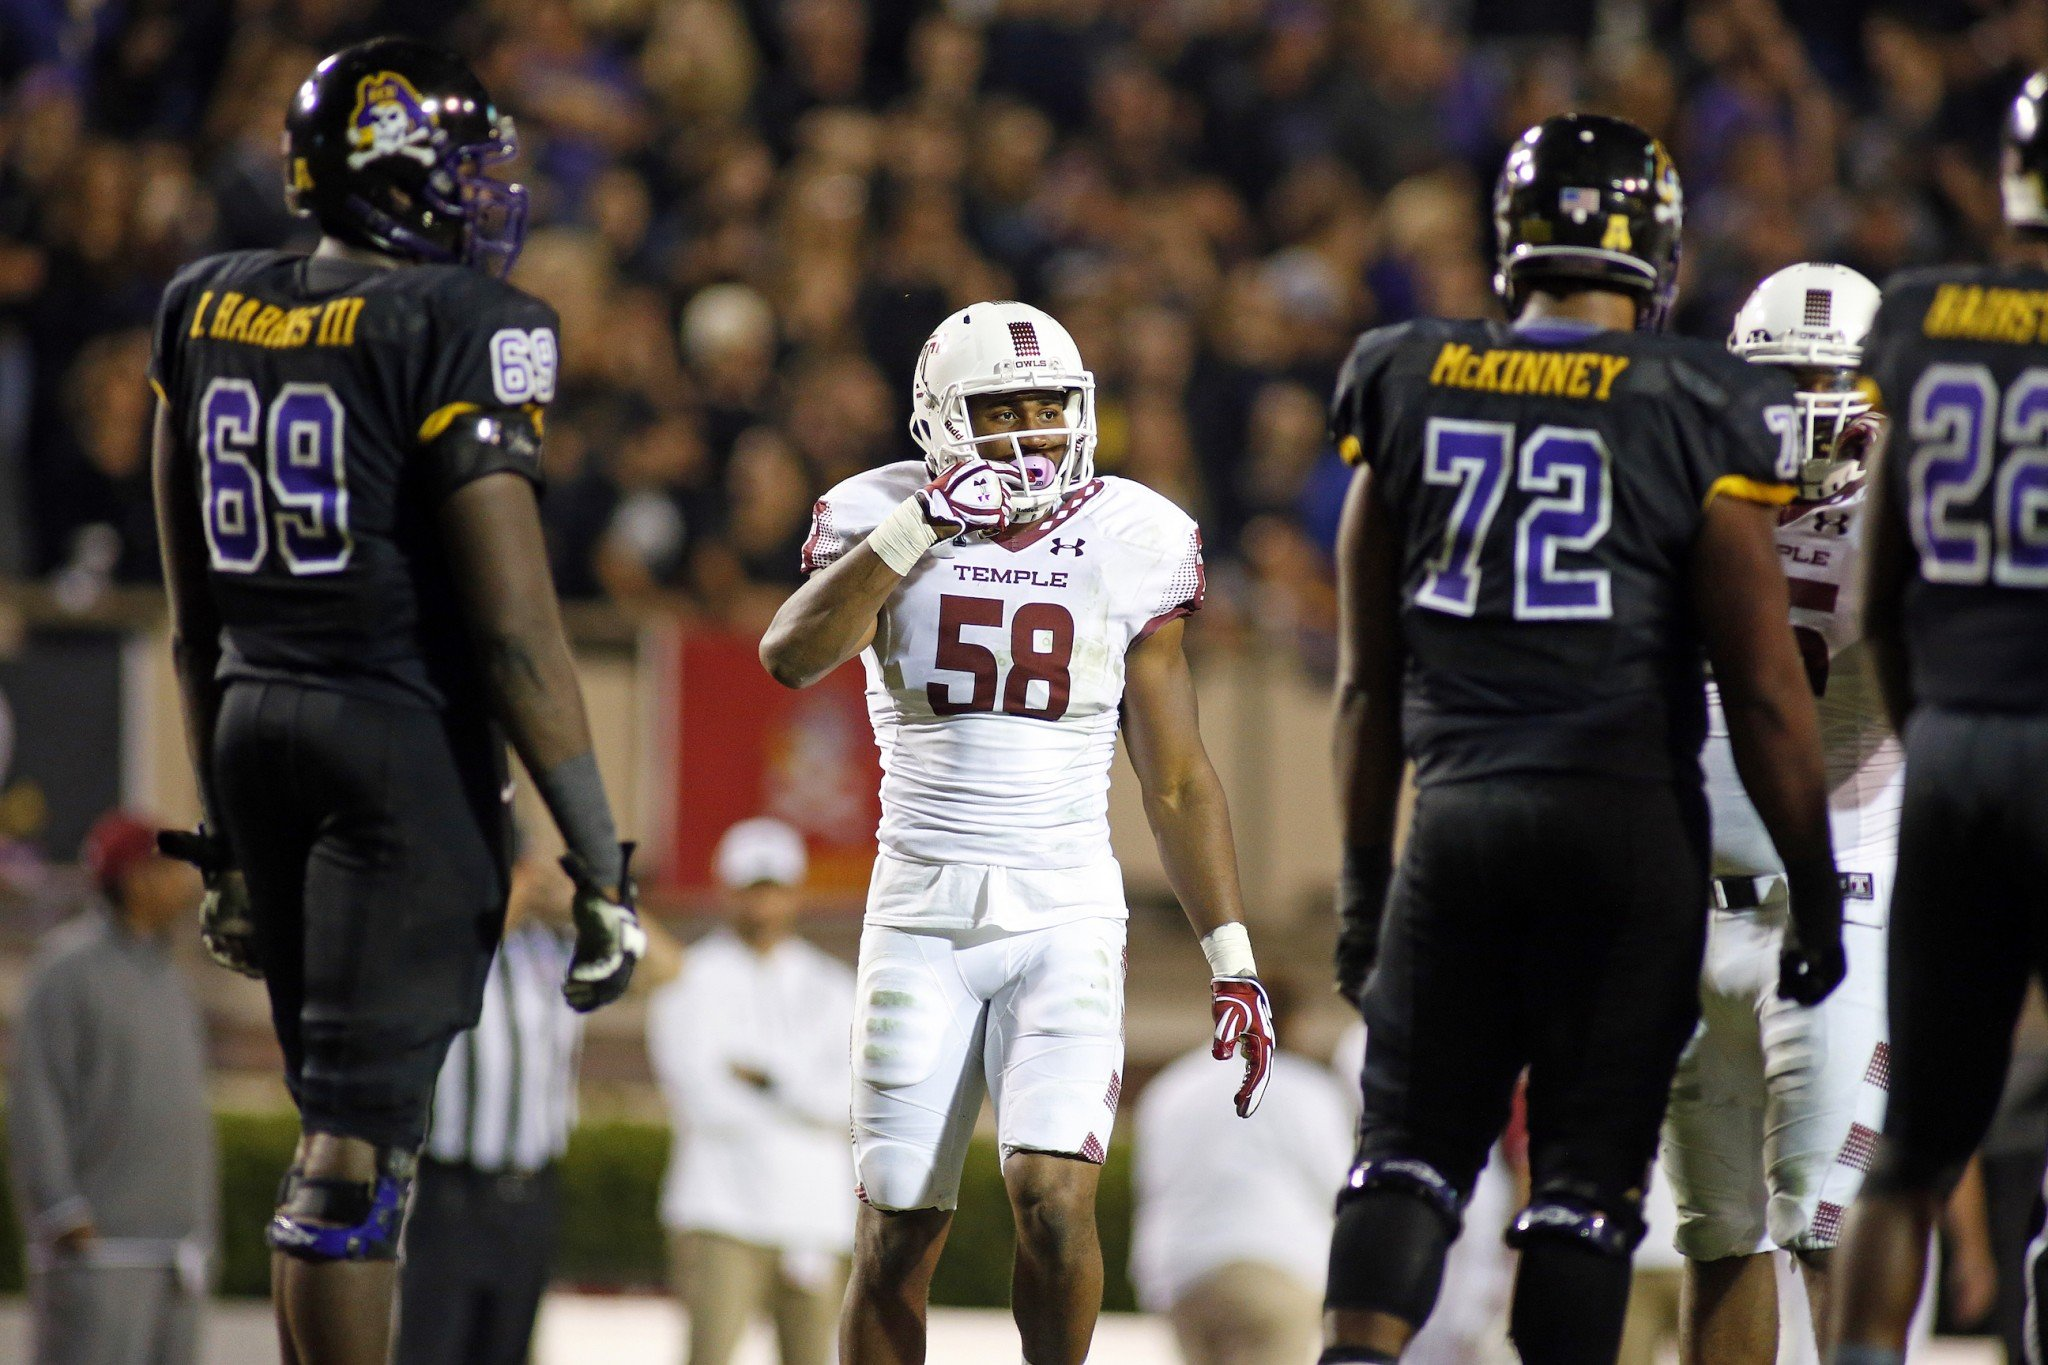 Temple's Haason Reddick (58) during the second half of an NCAA college football game against East Carolina in Greenville, N.C., Thursday, Oct. 22, 2015. (AP Photo/Karl B DeBlaker)